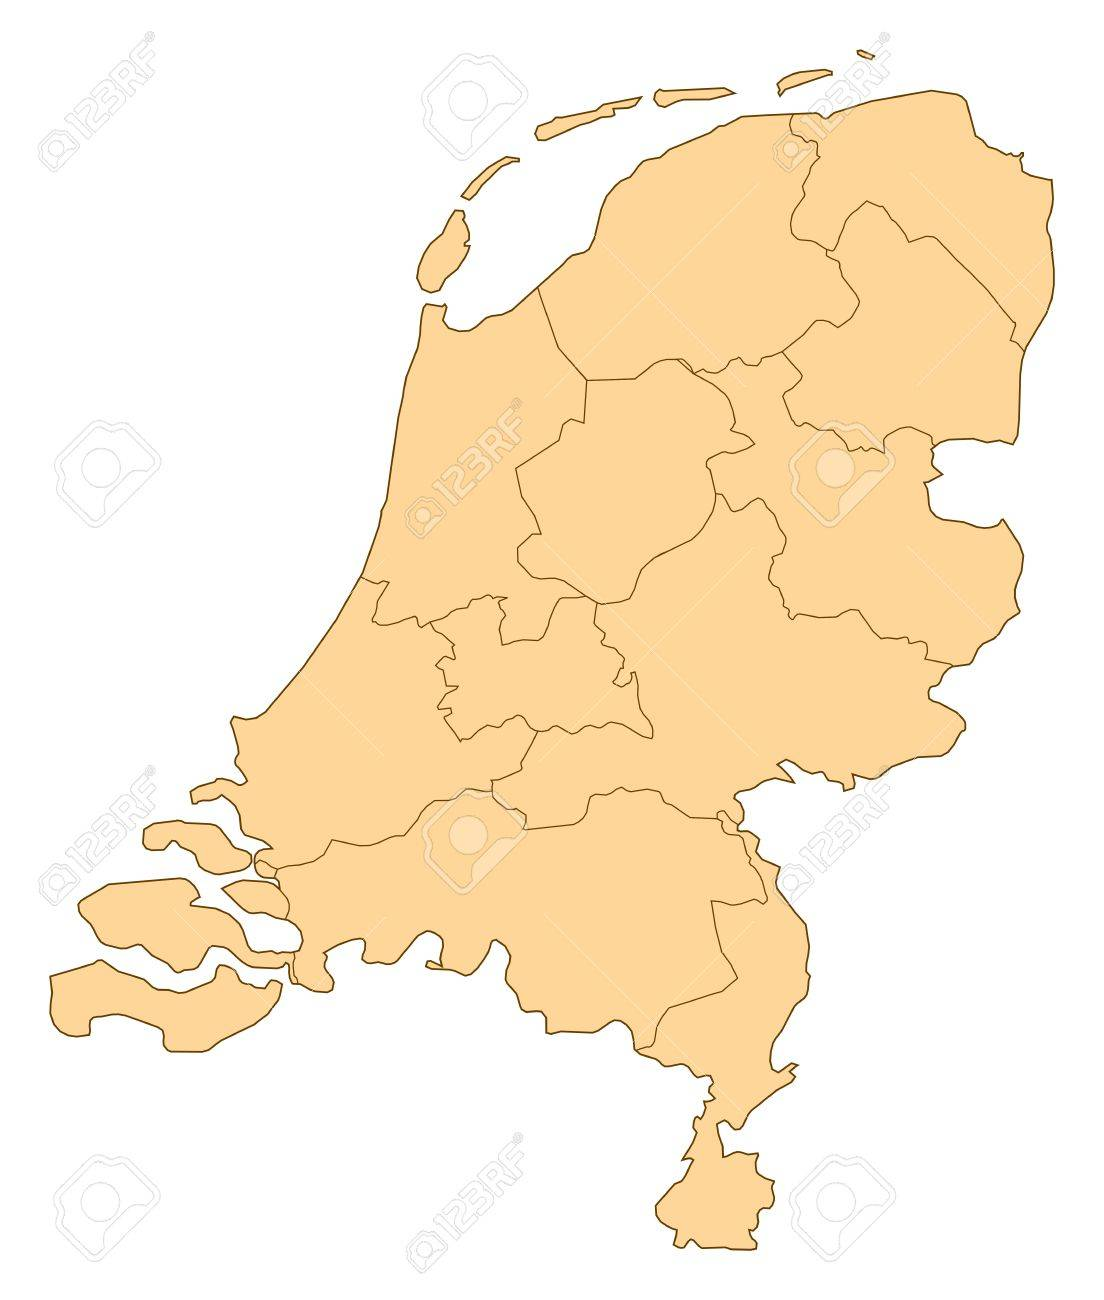 Map of Netherlands with the several provinces. - 14449986